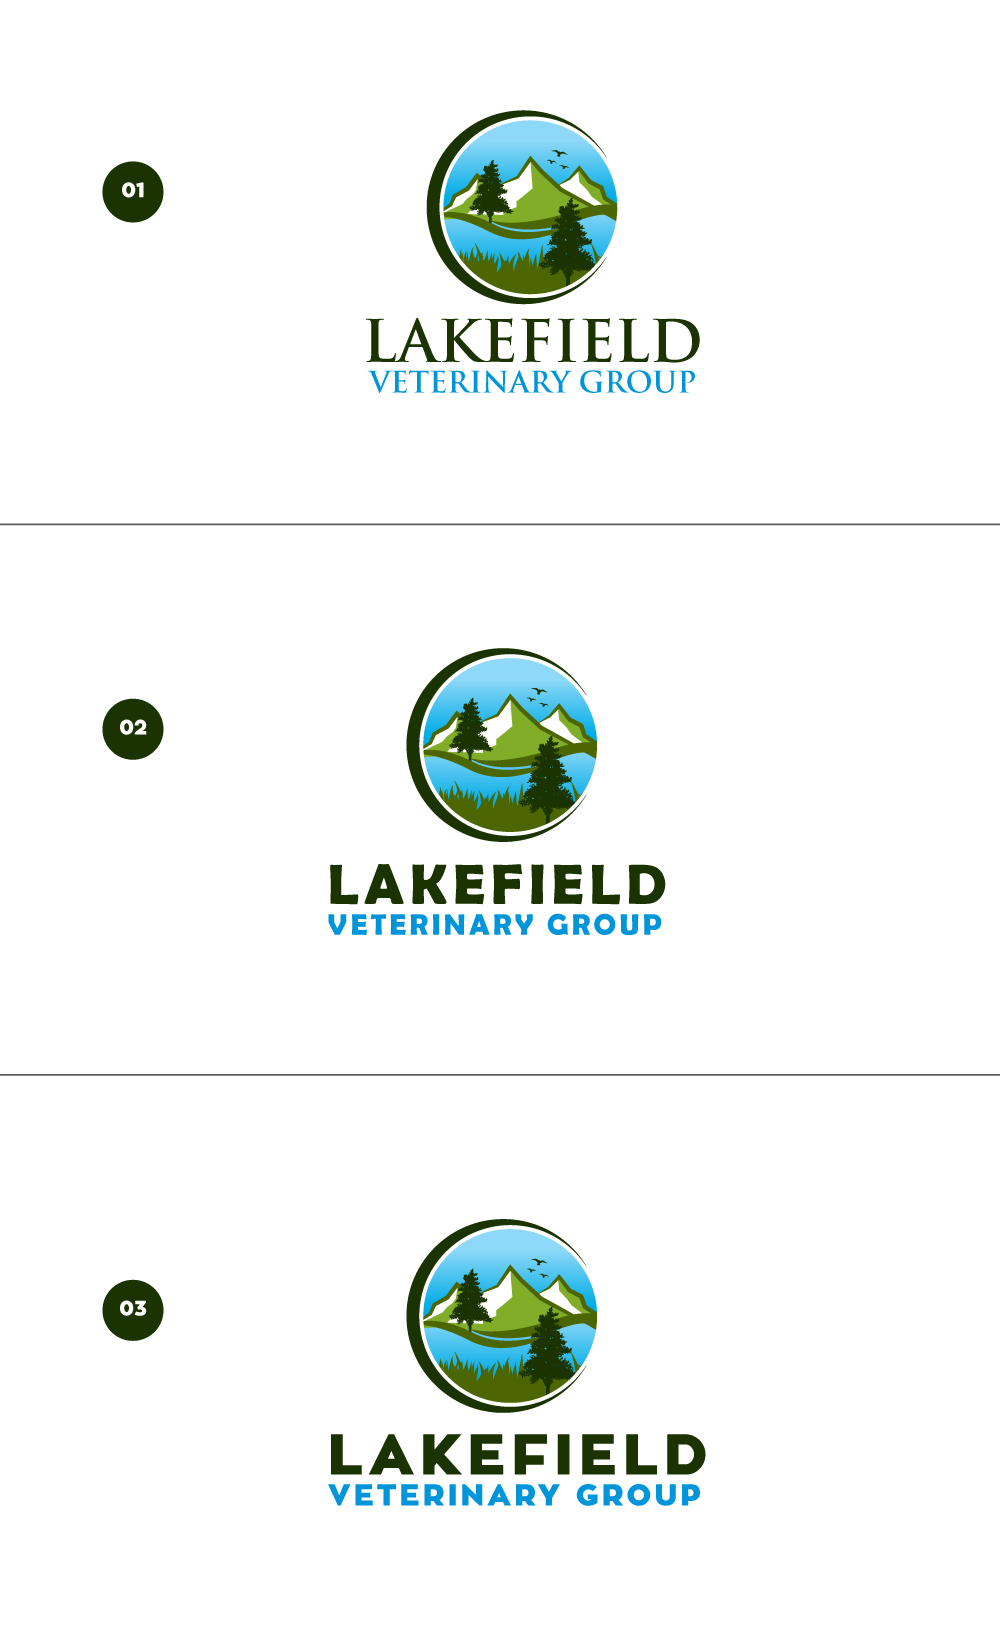 Logo Design by Tauhid Shaikh - Entry No. 71 in the Logo Design Contest Inspiring Logo Design for Lakefield Veterinary Group.